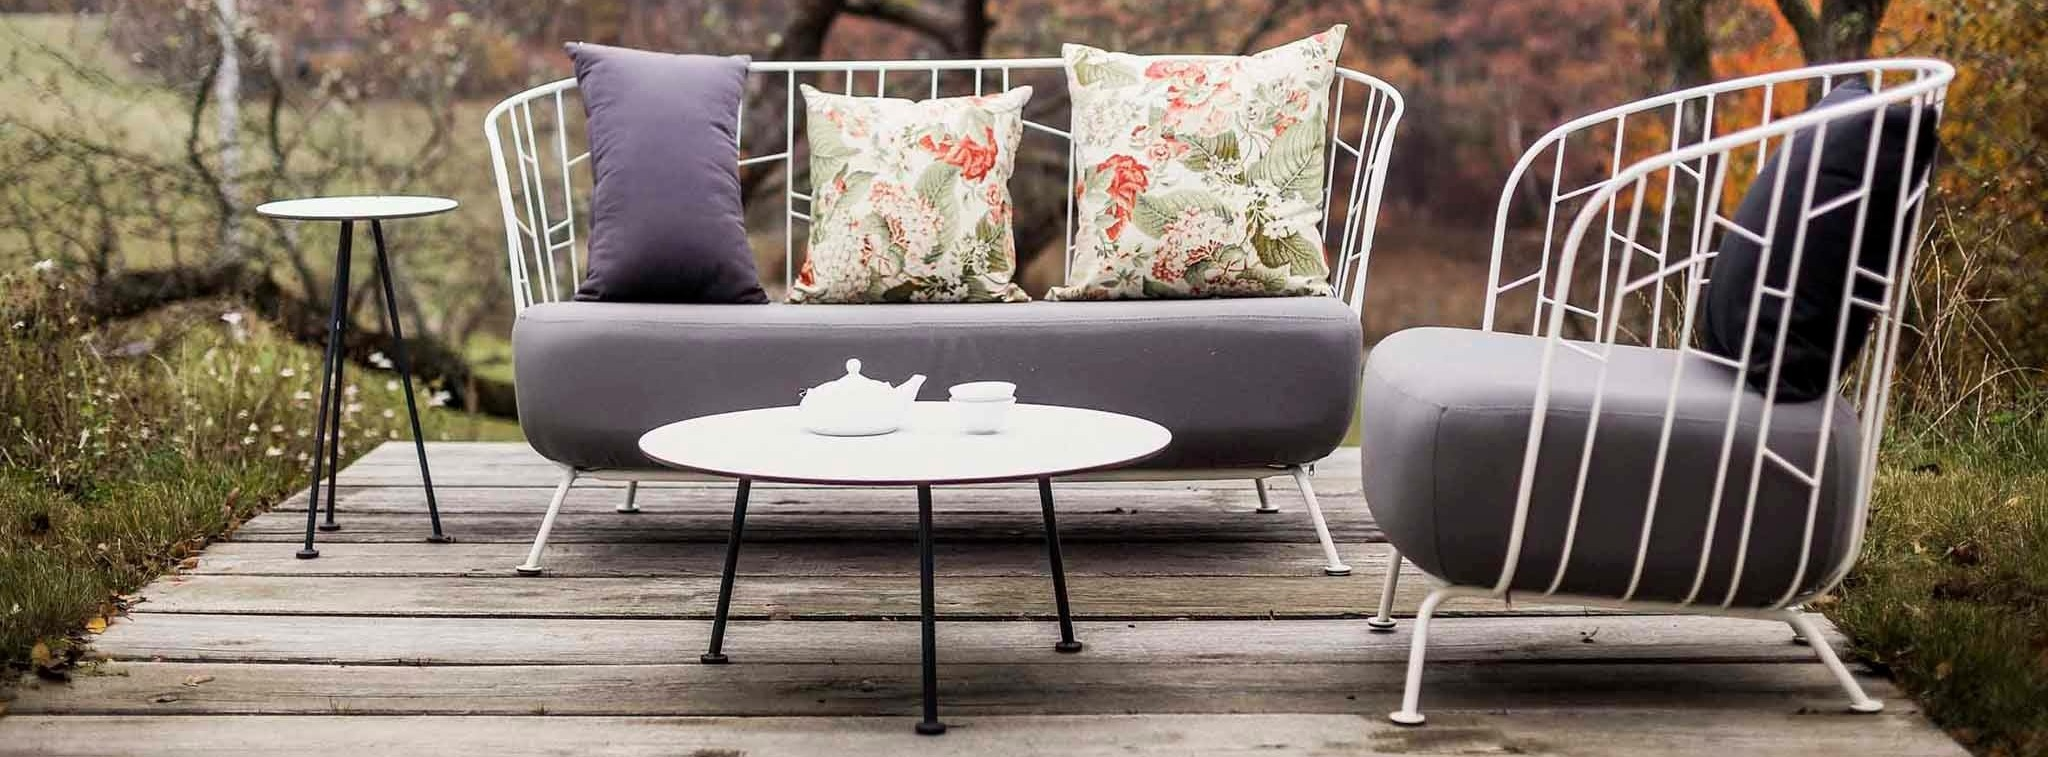 Mobilier outdoor